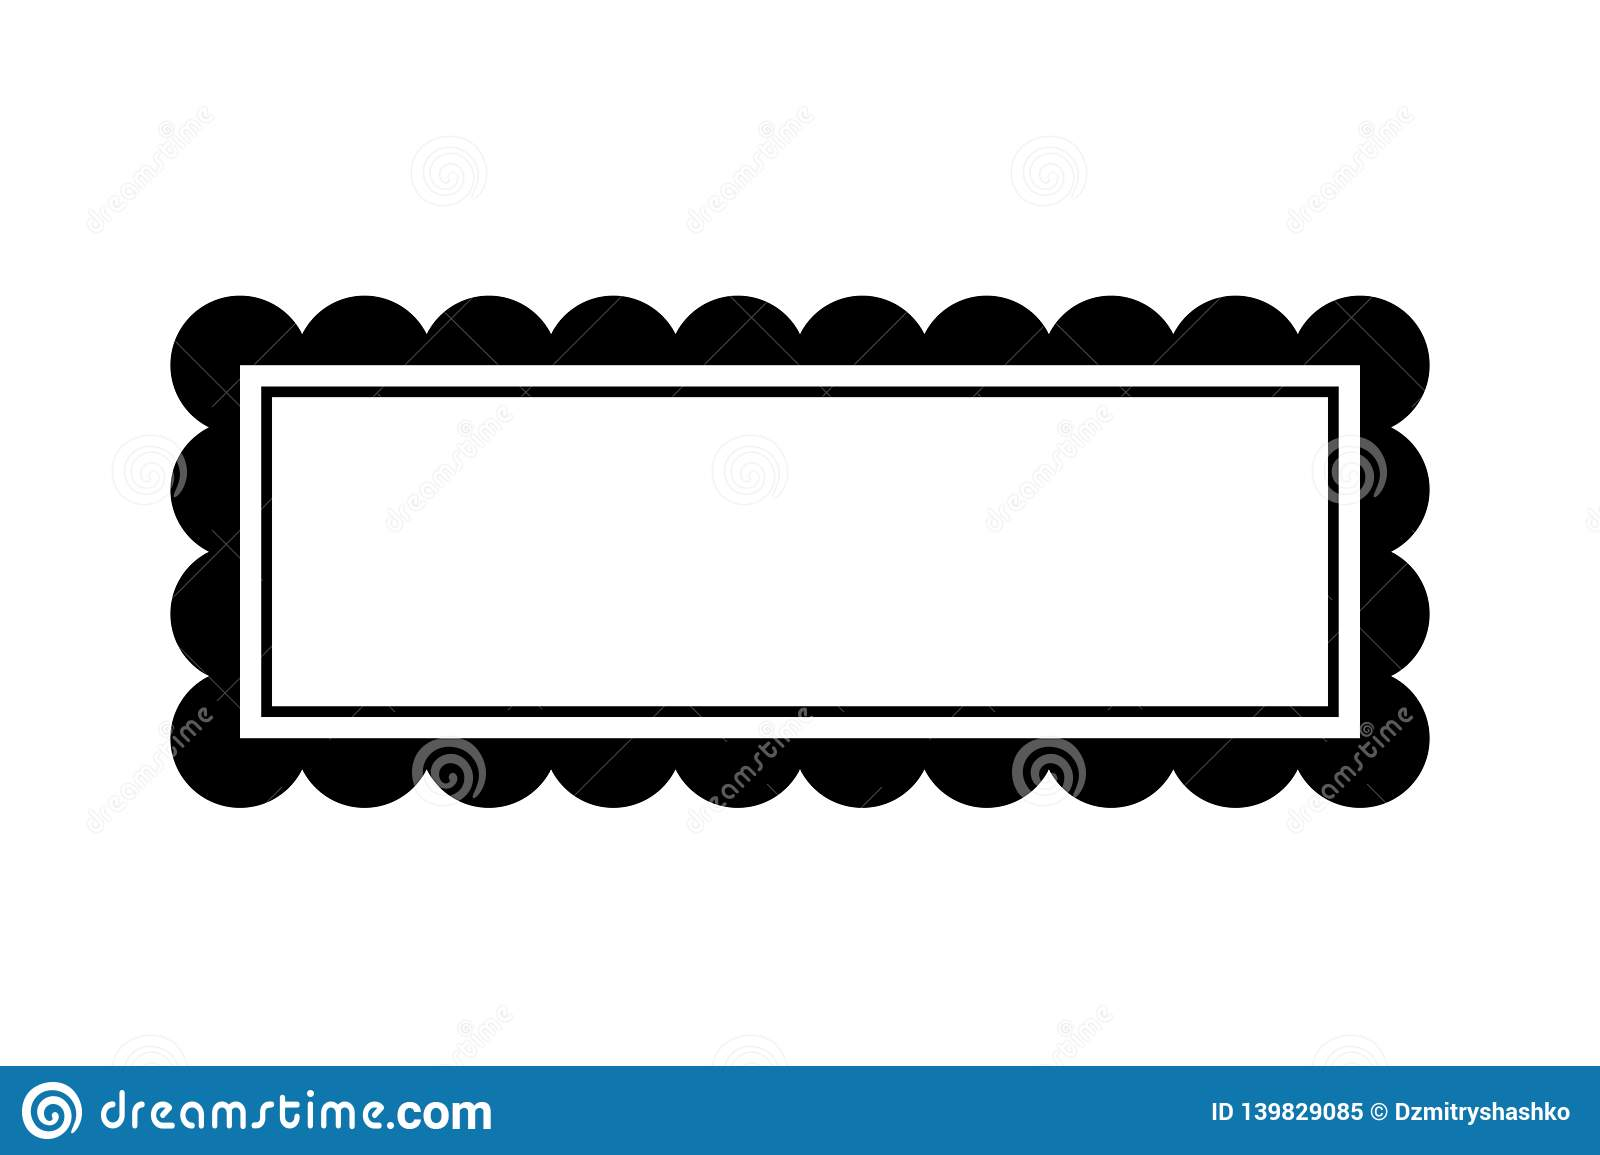 Fancy text box silhouette stock vector. Illustration of ornate.